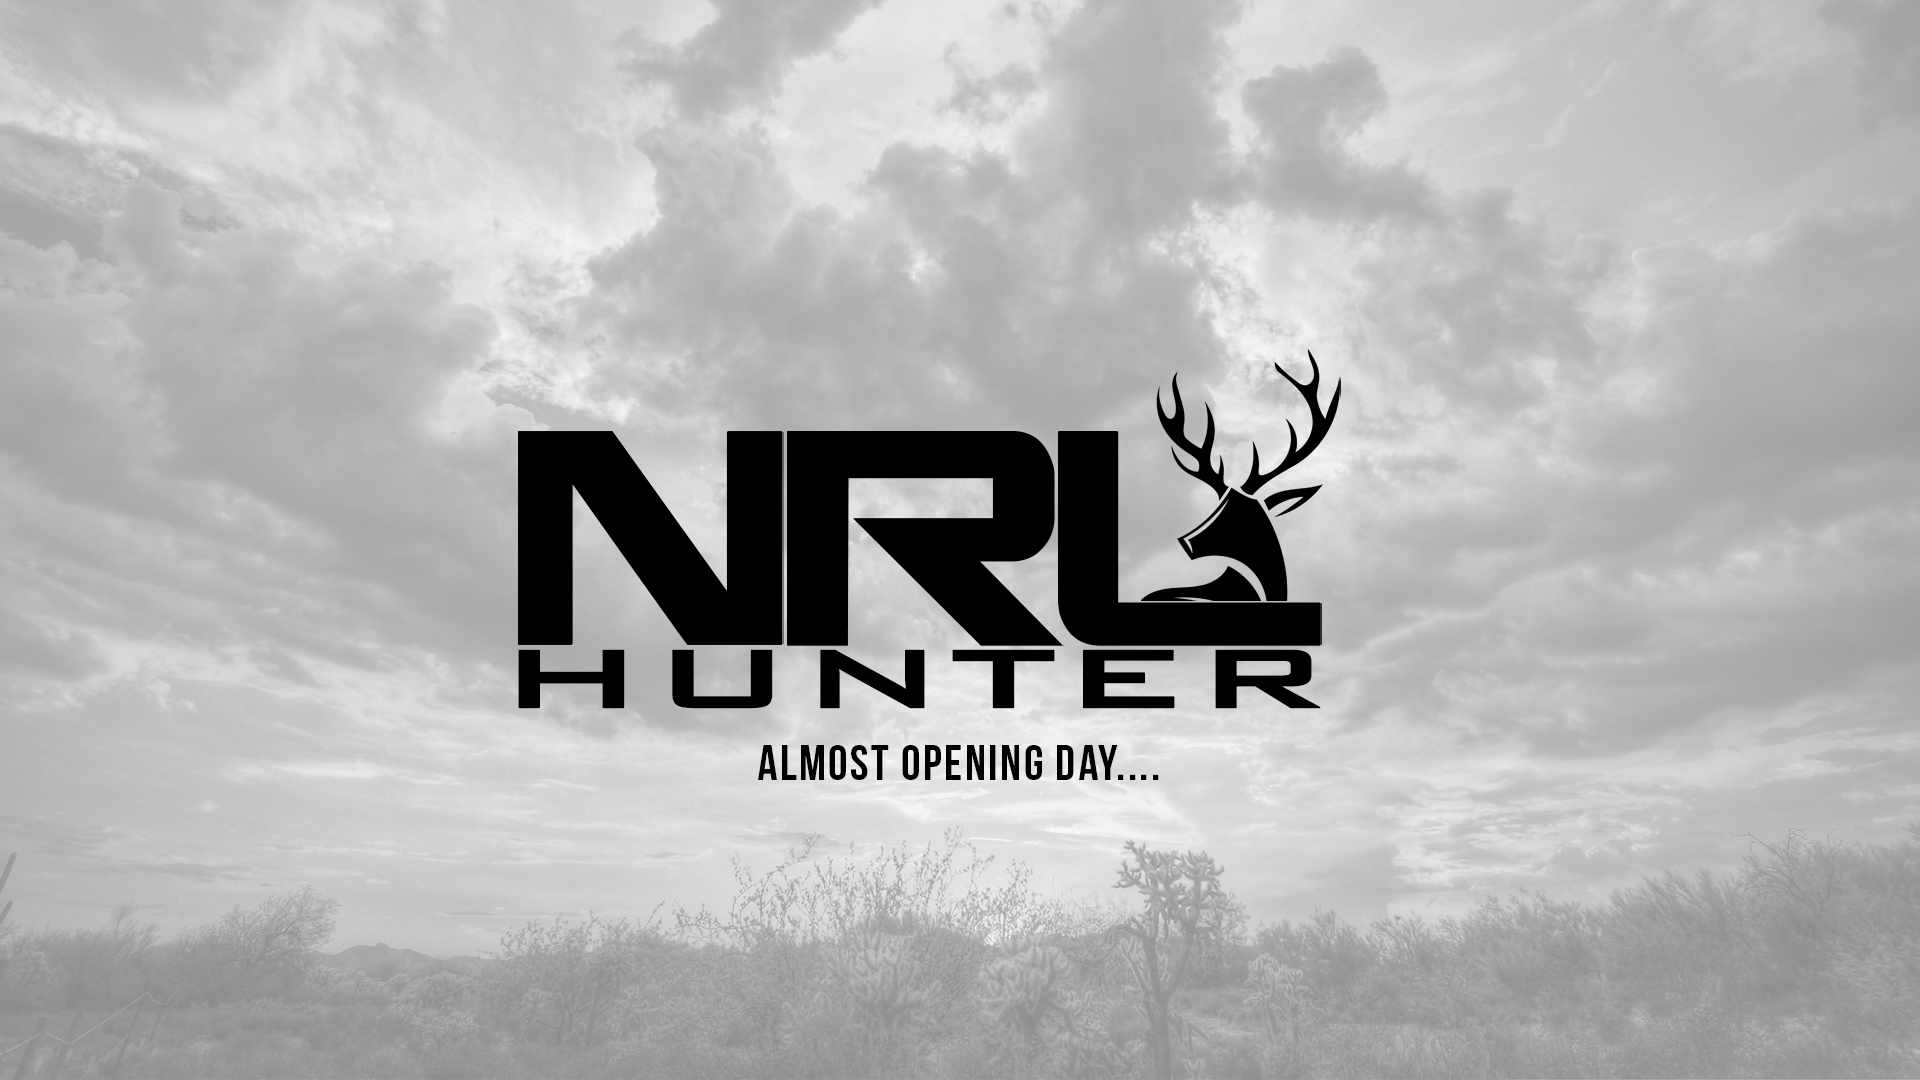 National Rifle League Debuts New 2021 Precision Rifle Series: NRL Hunter